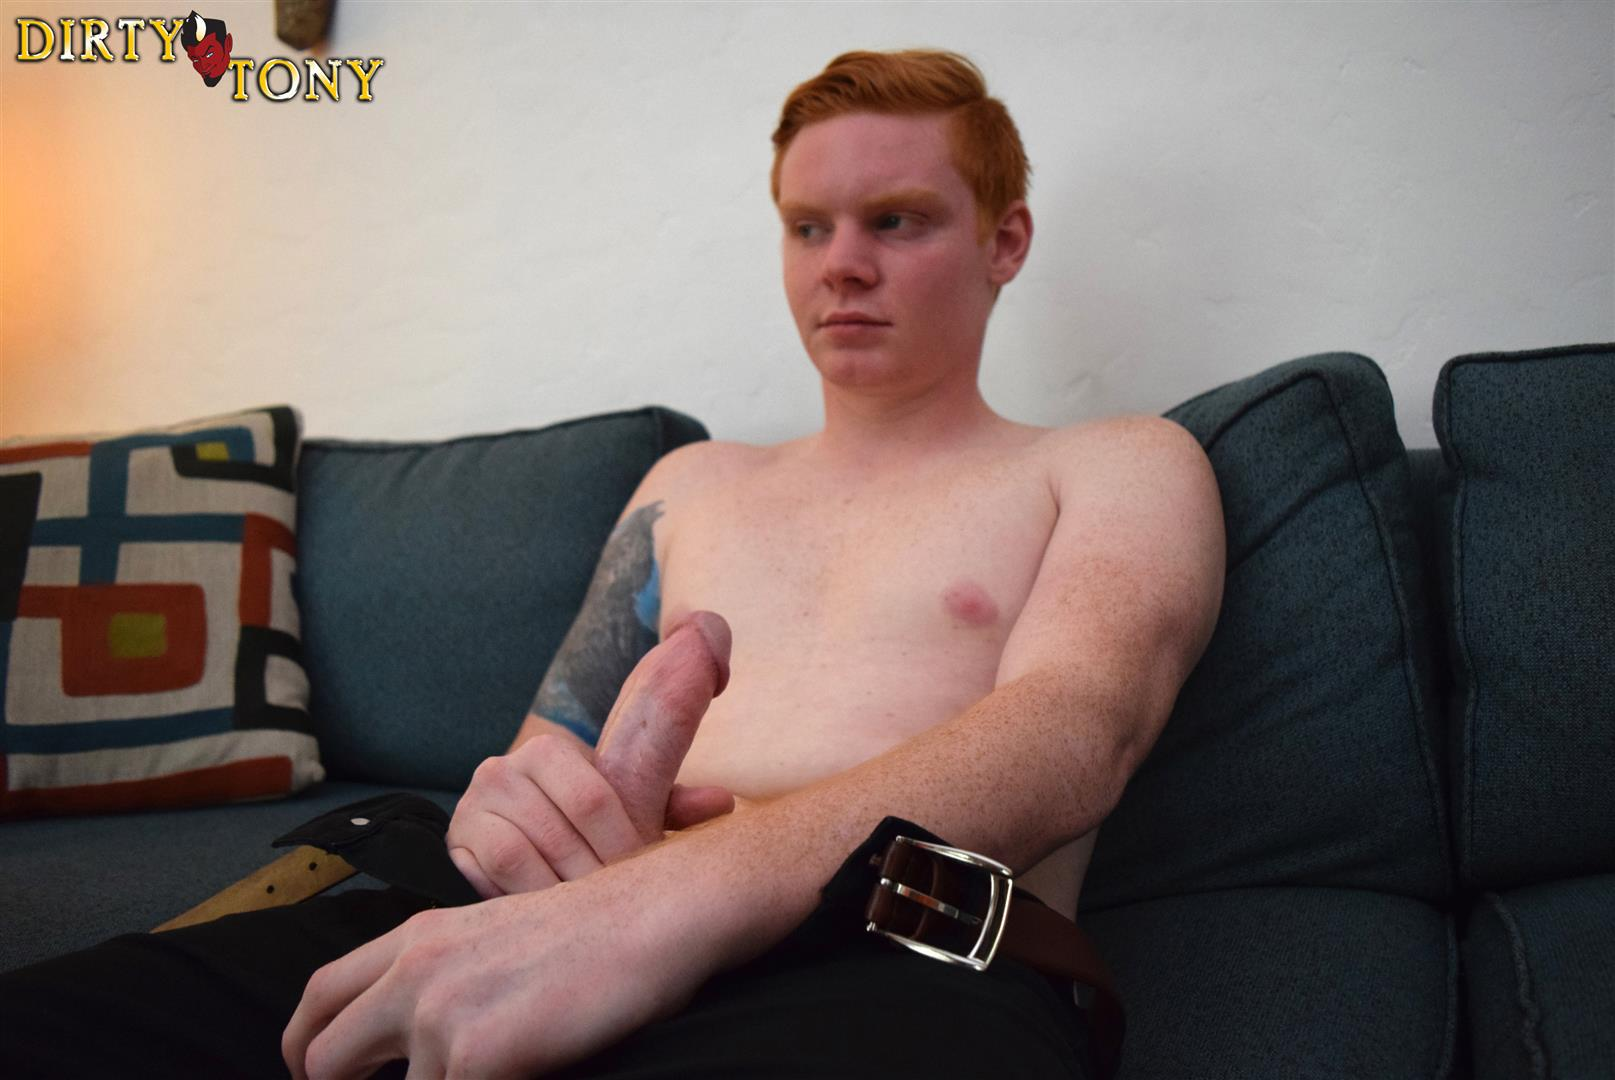 Dirty-Tony-Max-Breeker-Redheaded-Twink-Masturbation-Amateur-Gay-Porn-03 Bisexual 19 Year Old Redheaded Twink Auditions For Gay Porn